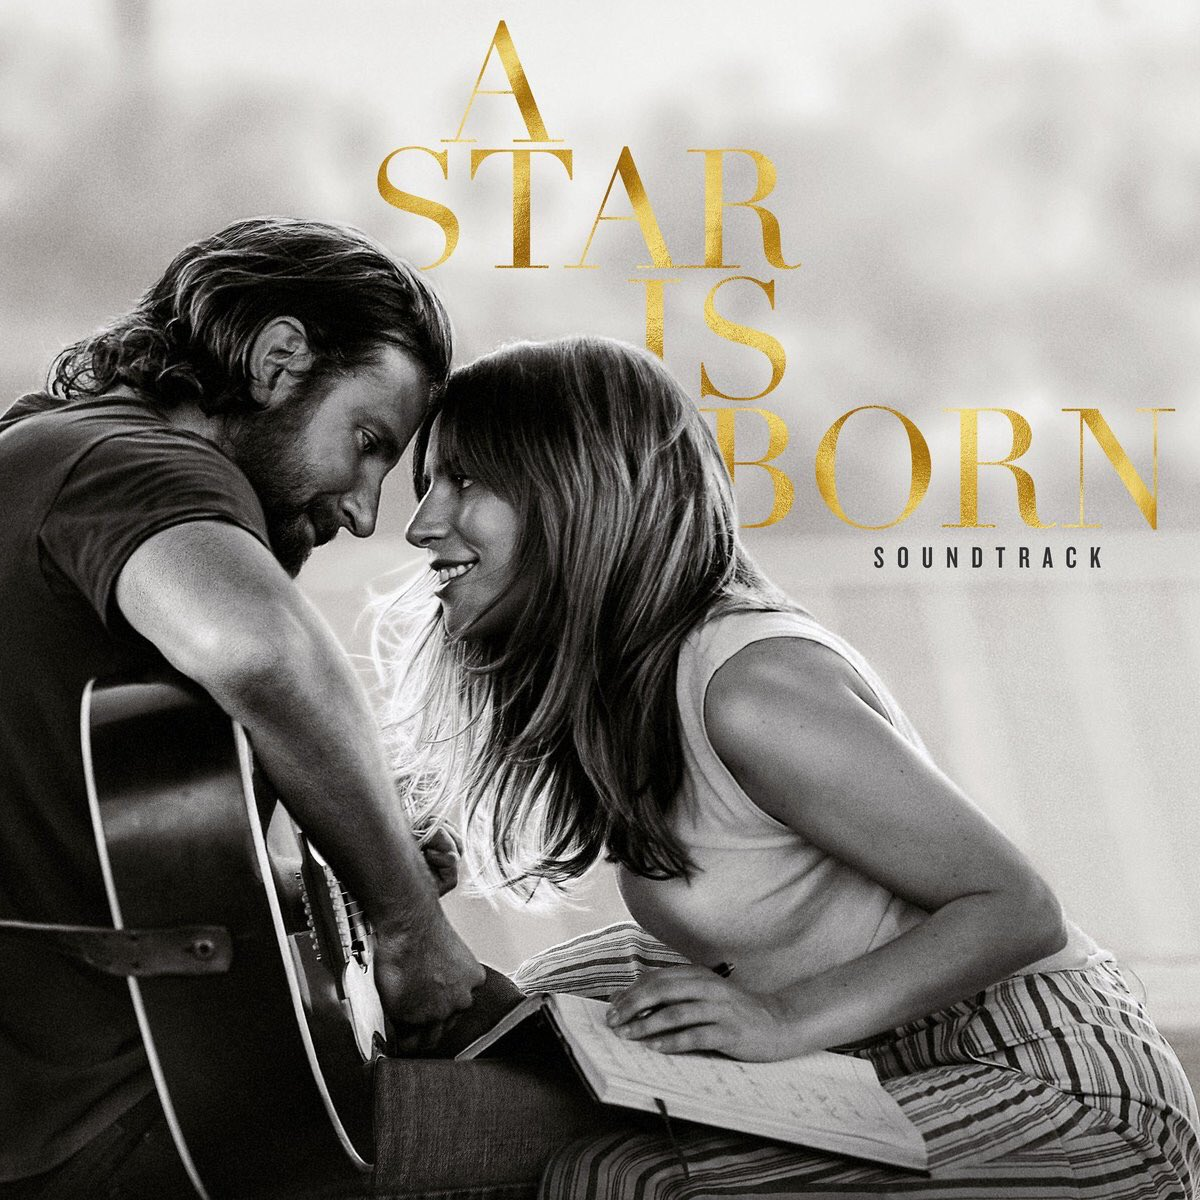 The original soundtrack for #AStarIsBorn is now certified 2x PLATINUM in France  (200,000 copies). Lady Gaga is the first international artist to succeed at this since &quot;25&quot; by Adele.  #IllNeverLoveAgain #LeftUsShook #iHeartAwards<br>http://pic.twitter.com/mqdyT46lTi